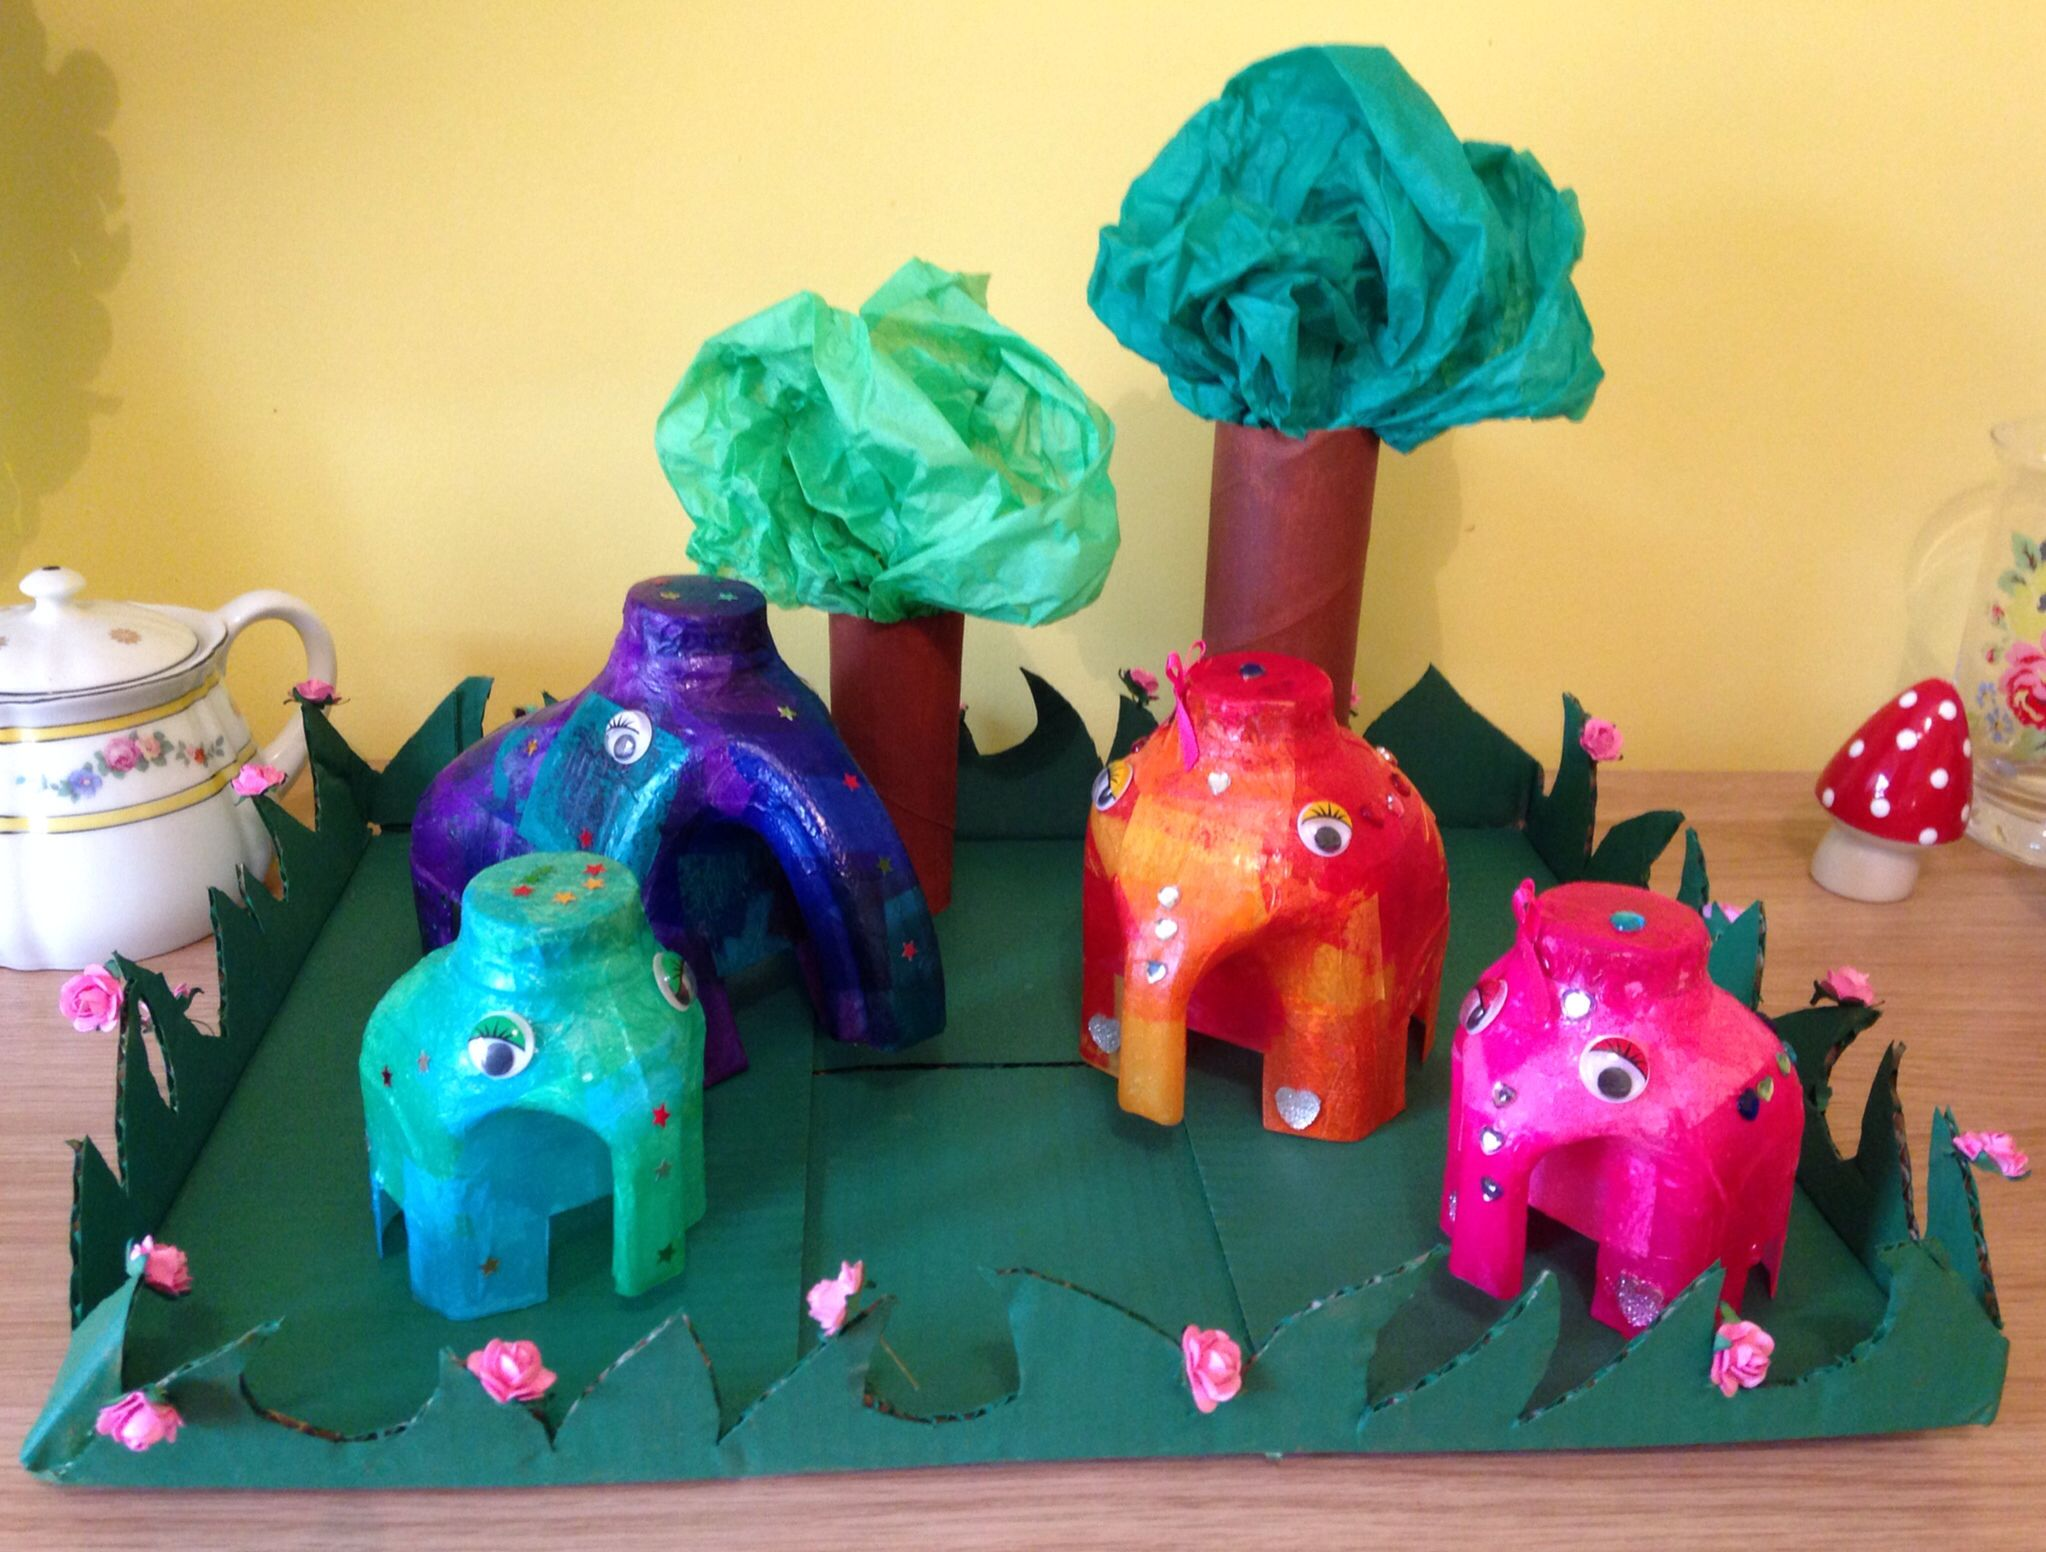 Kids Crafts Elephant Family Made From Recycled Milk Bottles